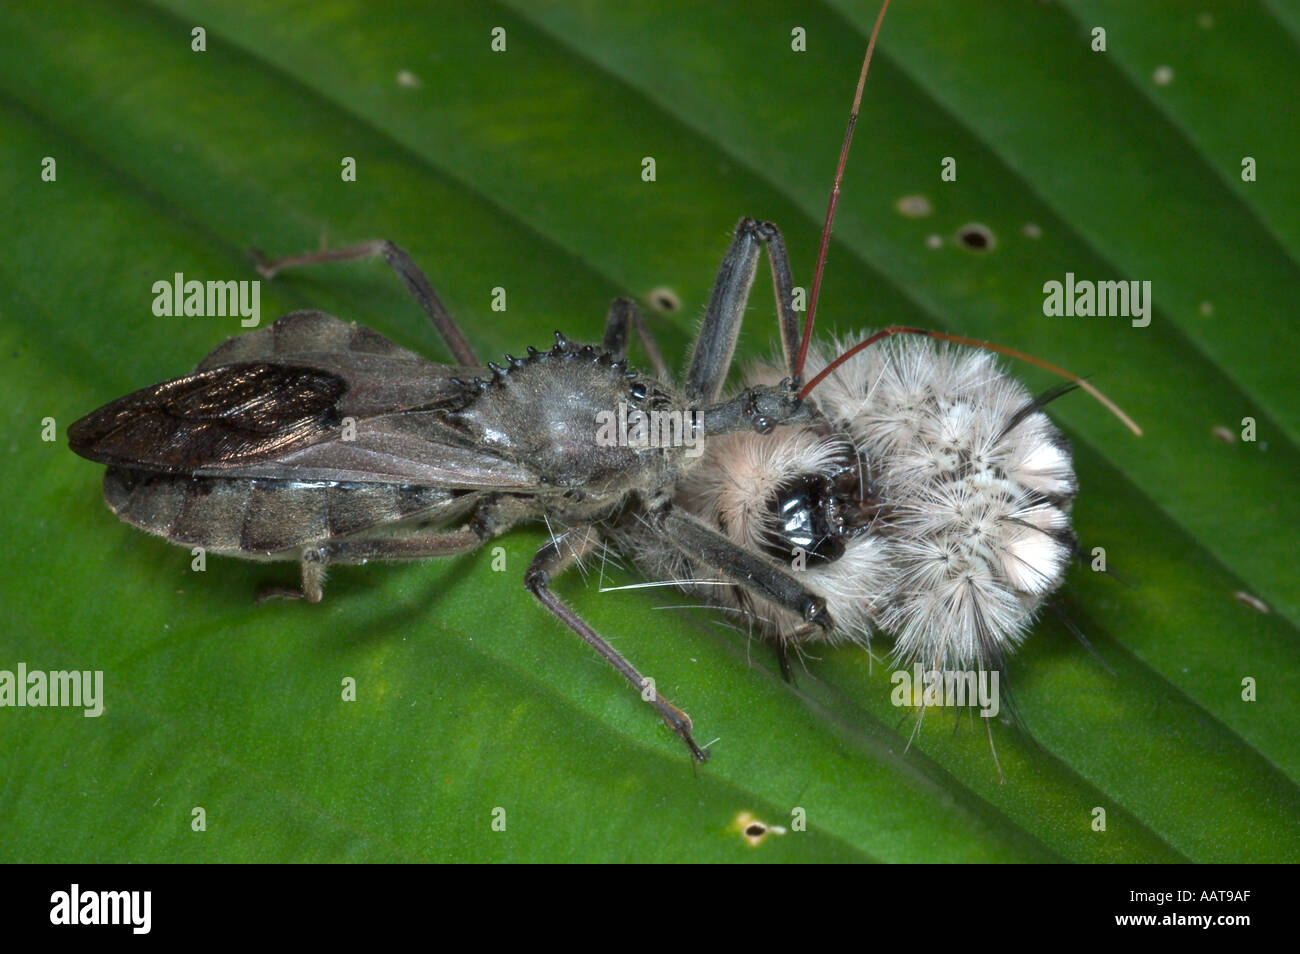 Wheel bug eating wooly bear caterpillar Arilus cristatus Predaceous bug in the assassin bug Reduviidae family - Stock Image